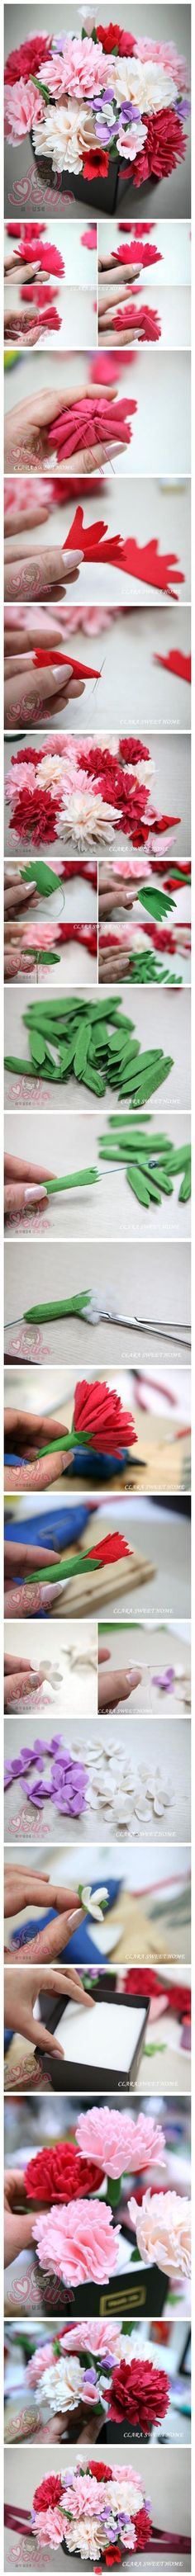 felt tutorials- felt flowers carnation and hydrangea bouquet tutorialcarnation and hydrangea bouquet tutorial Felt Diy, Felt Crafts, Fabric Crafts, Sewing Crafts, Diy And Crafts, Paper Crafts, Sewing Projects, Felt Flowers, Diy Flowers